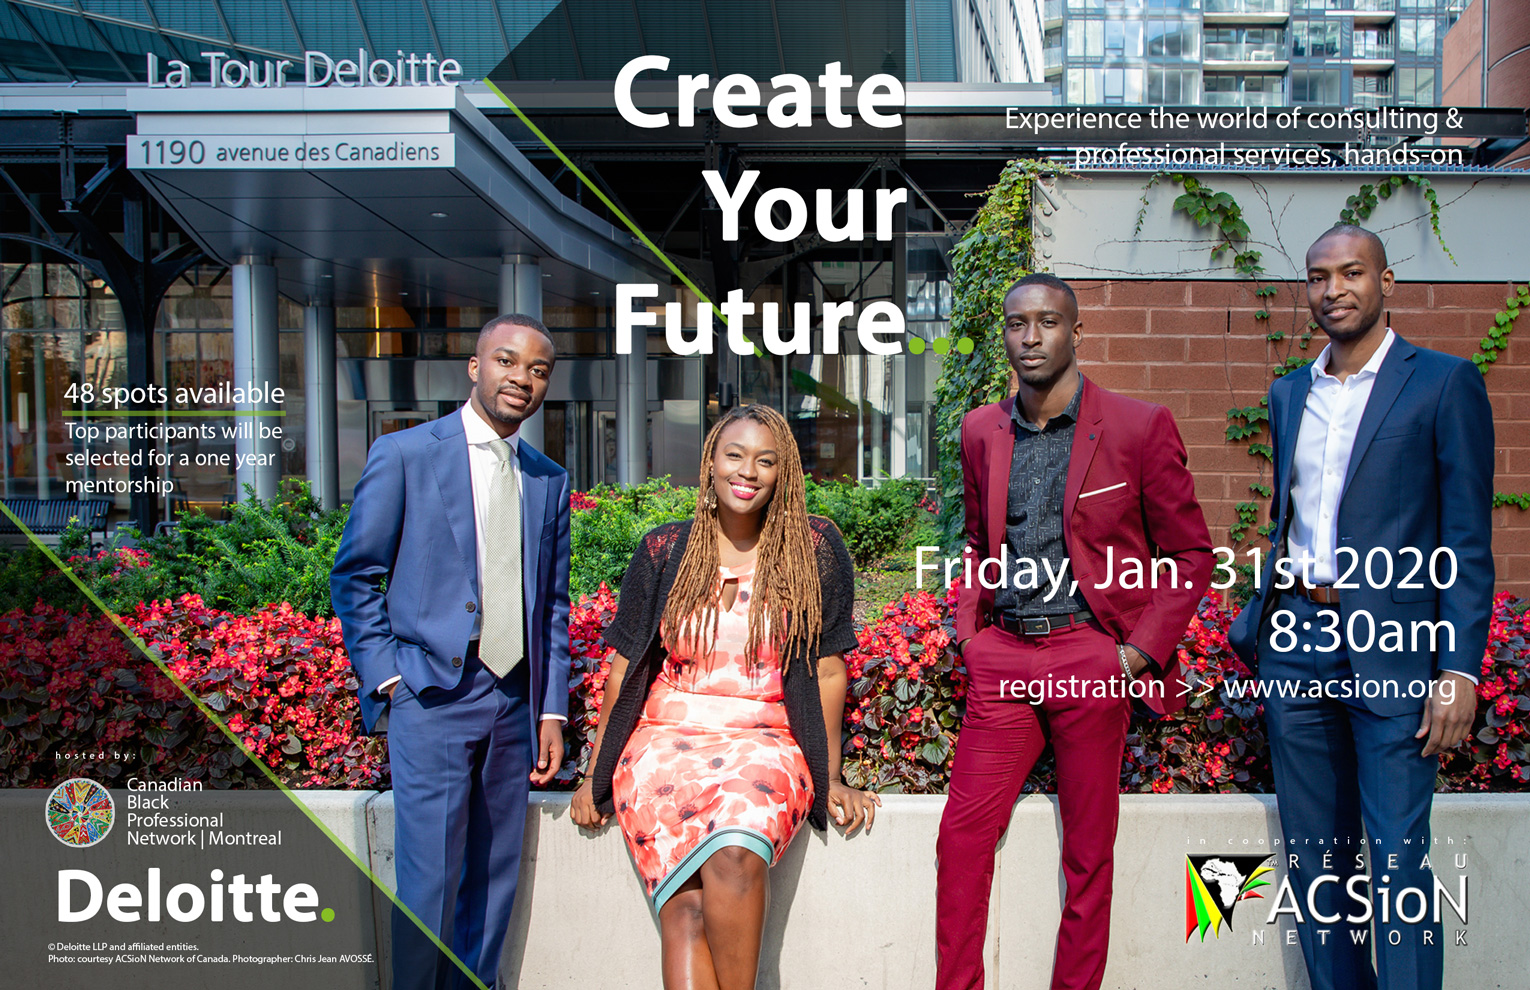 """Flyer for """"Create Your Future"""" event with Deloitte Canadian Black PRofessional Network and ACSioN Canada"""